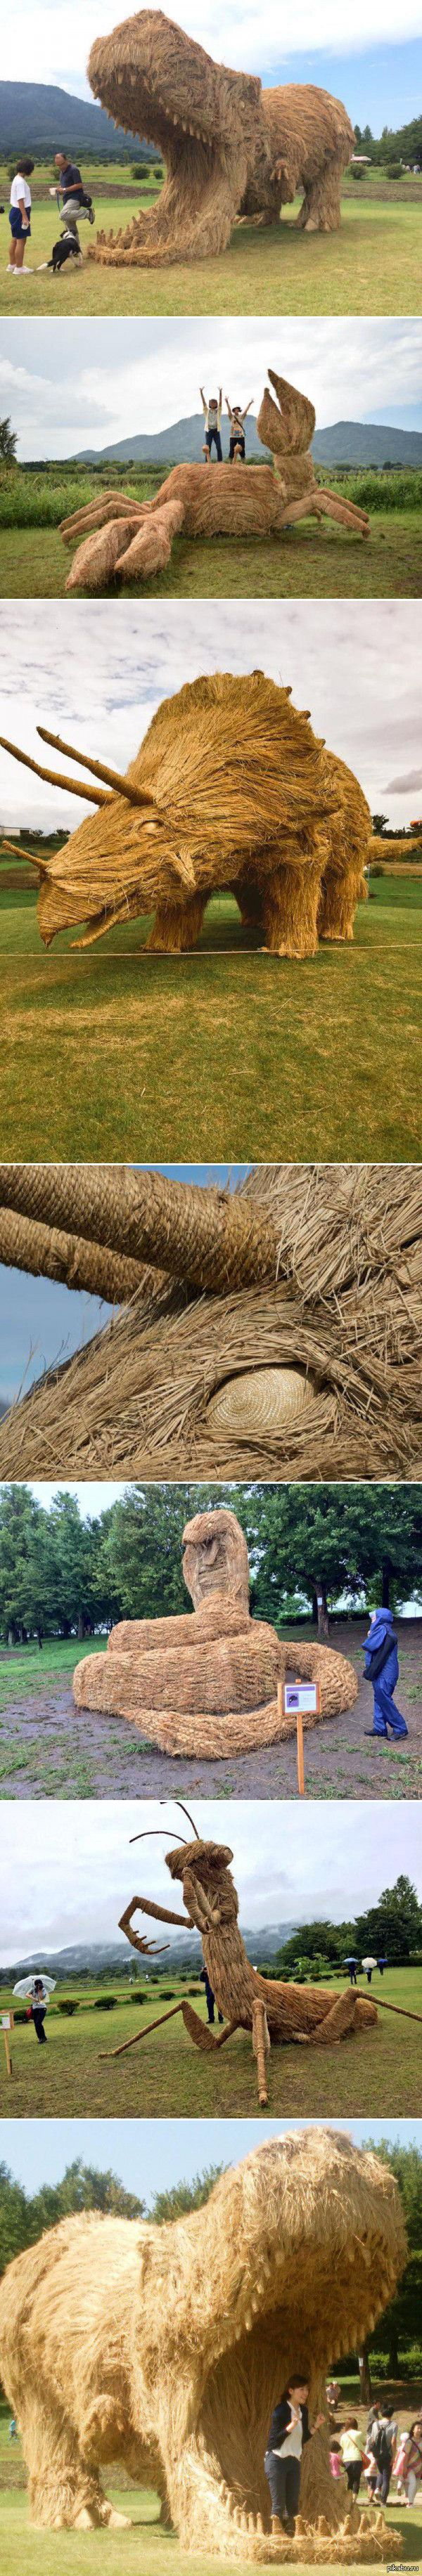 festival in Japan.sculptures made from rice stalks